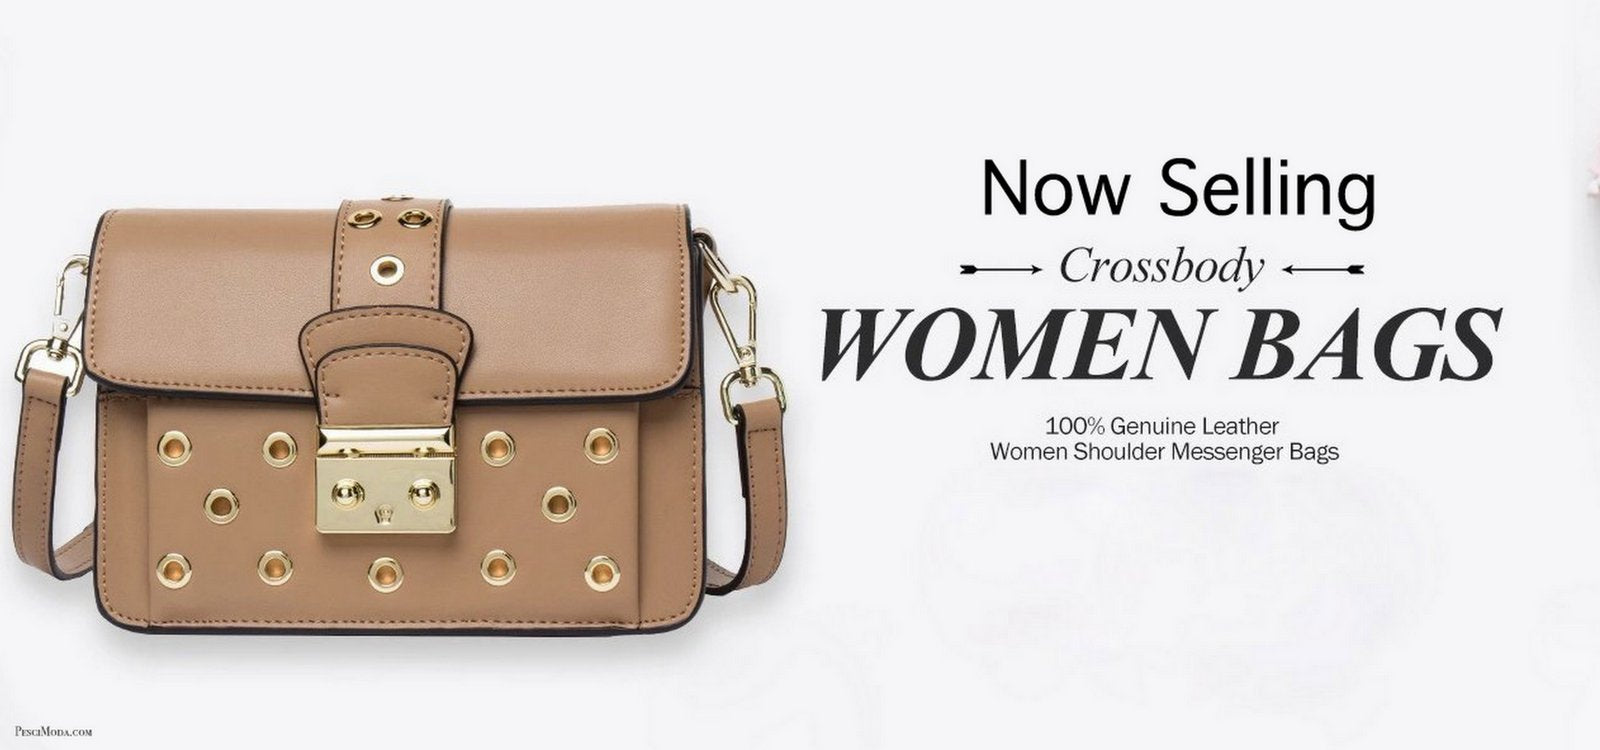 Women's Handbags On Sale | PesciModa.com